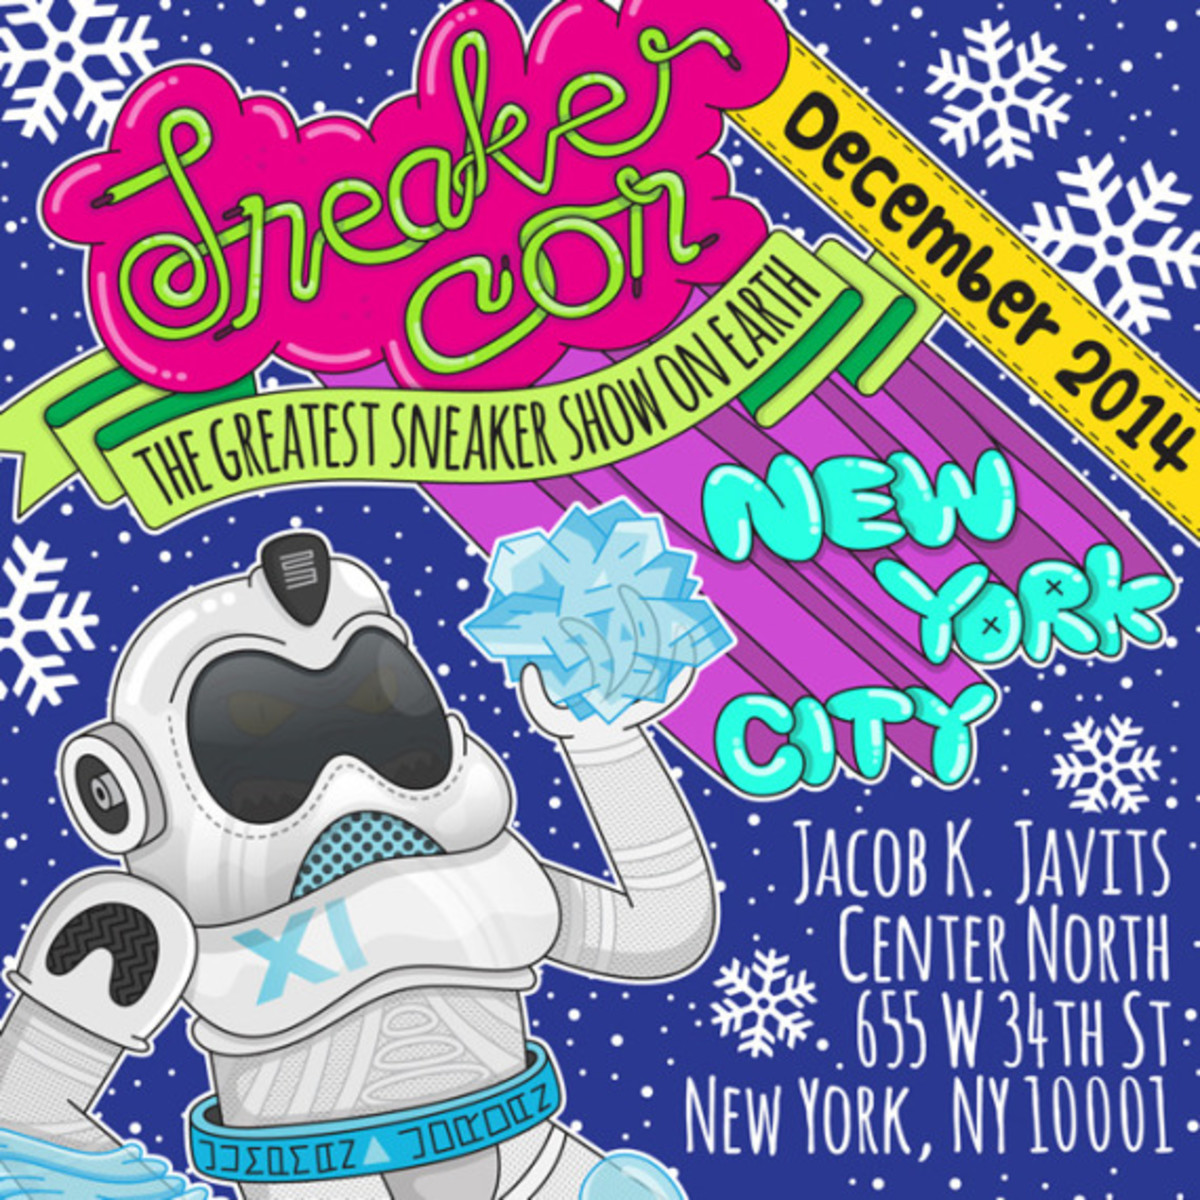 Sneaker Con New York City – December 6th, 2014 | Event Reminder - 3